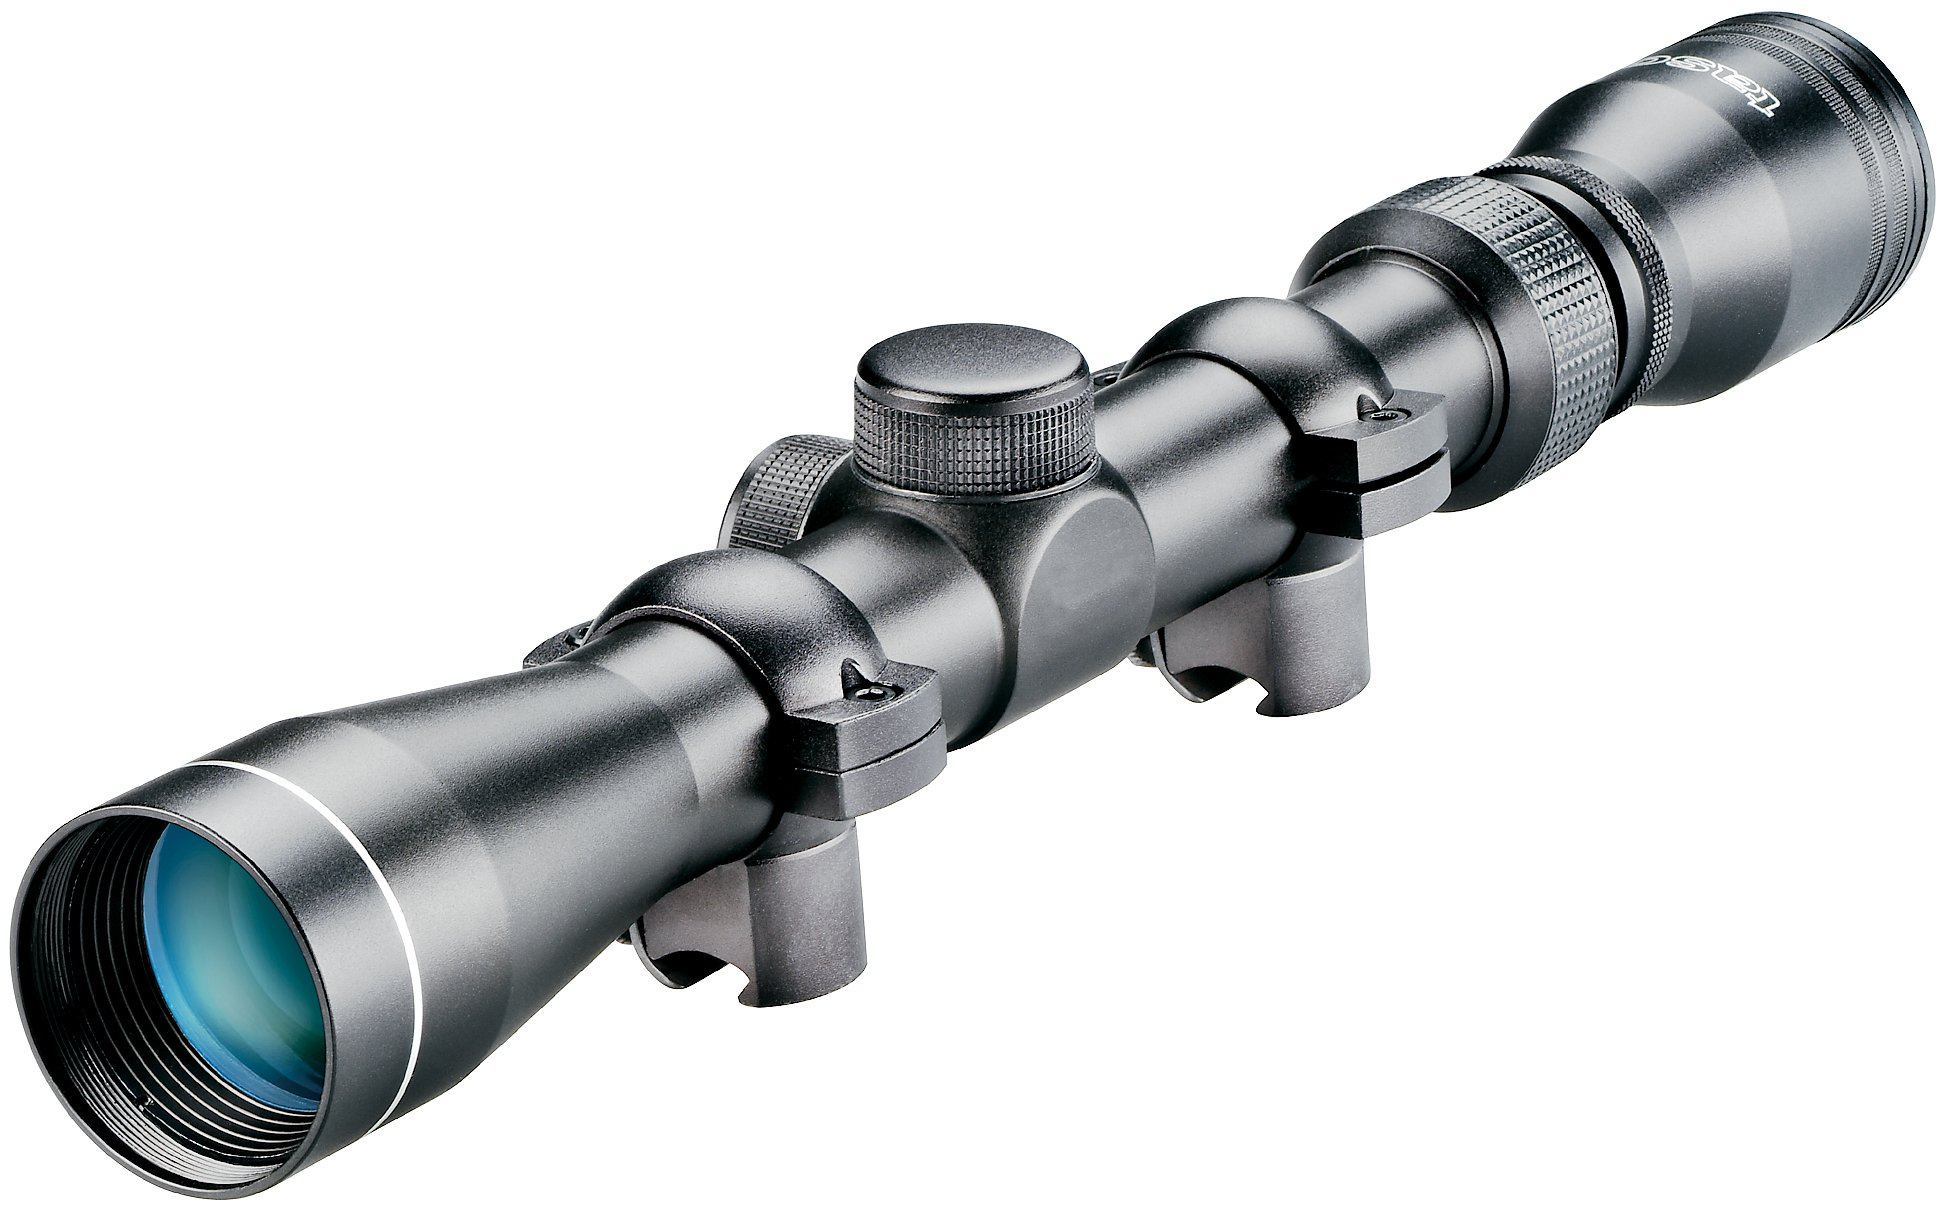 TASCO MAG39X32D Rimfire Series 3-9x 32mm 30/30 Reticle .22 Riflescope (Matte Finish) by TASCO